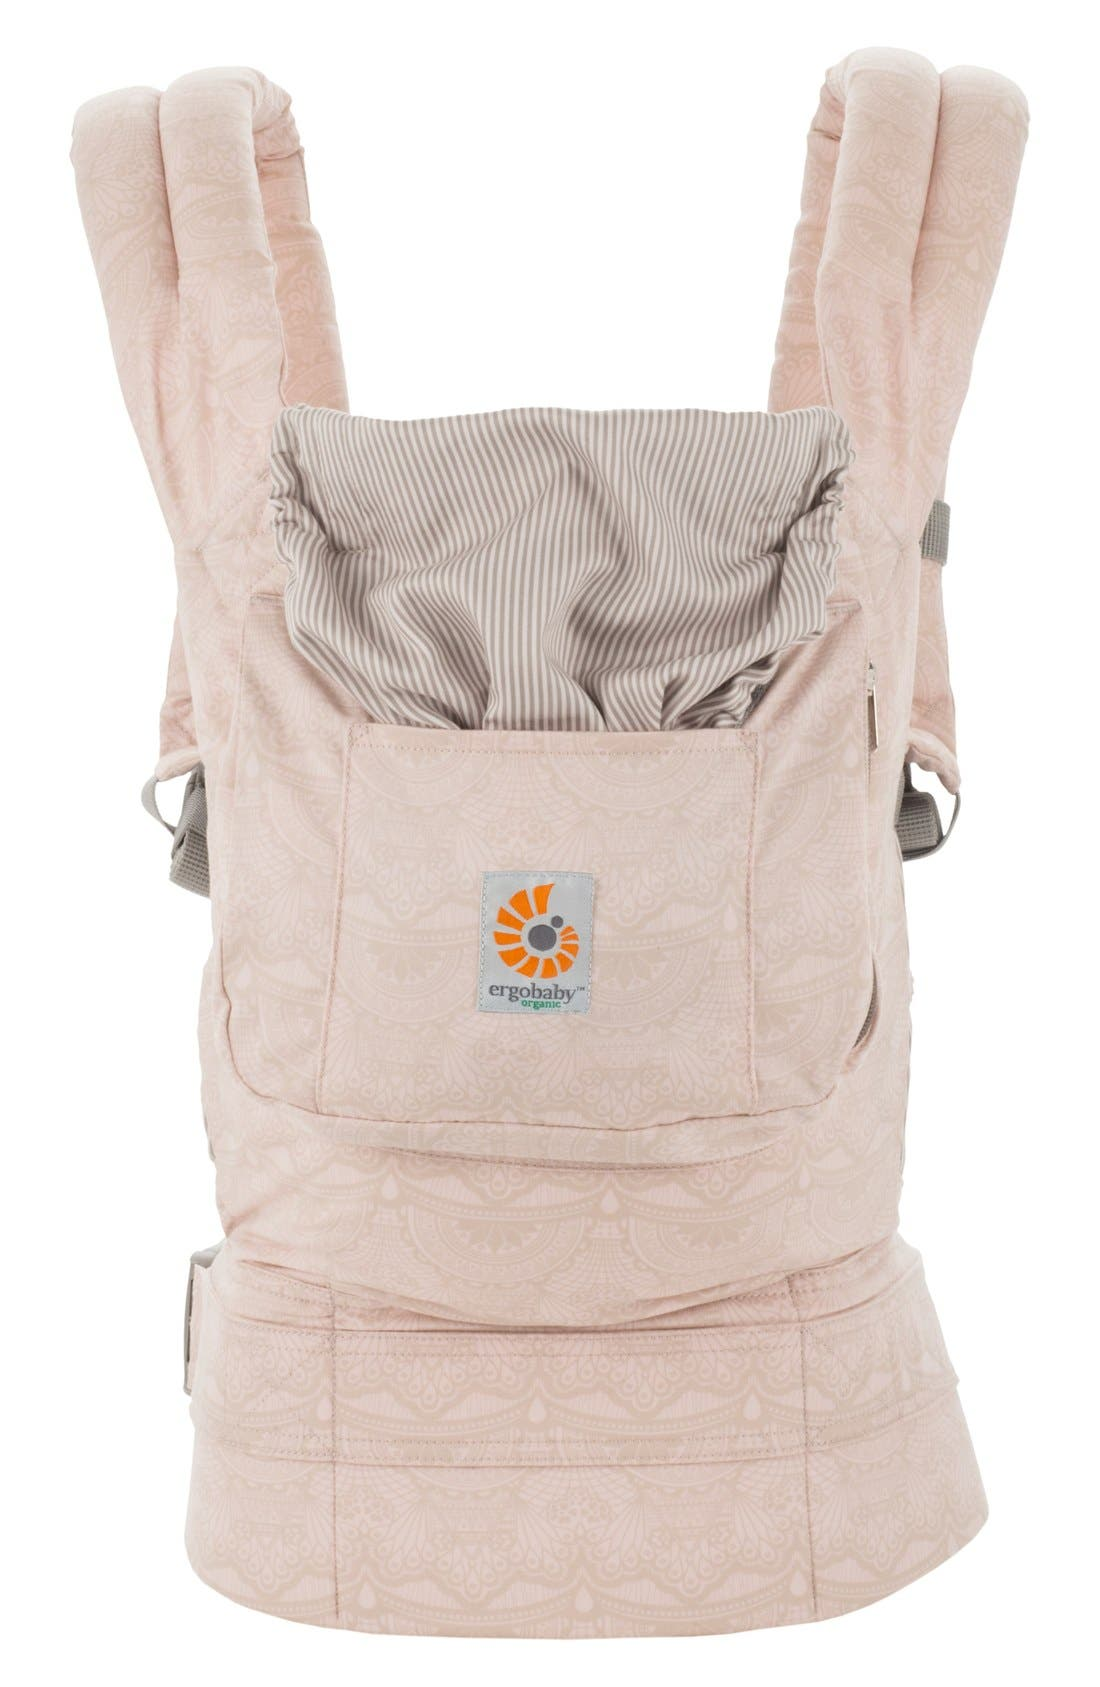 ERGObaby Organic Cotton Baby Carrier (Baby)